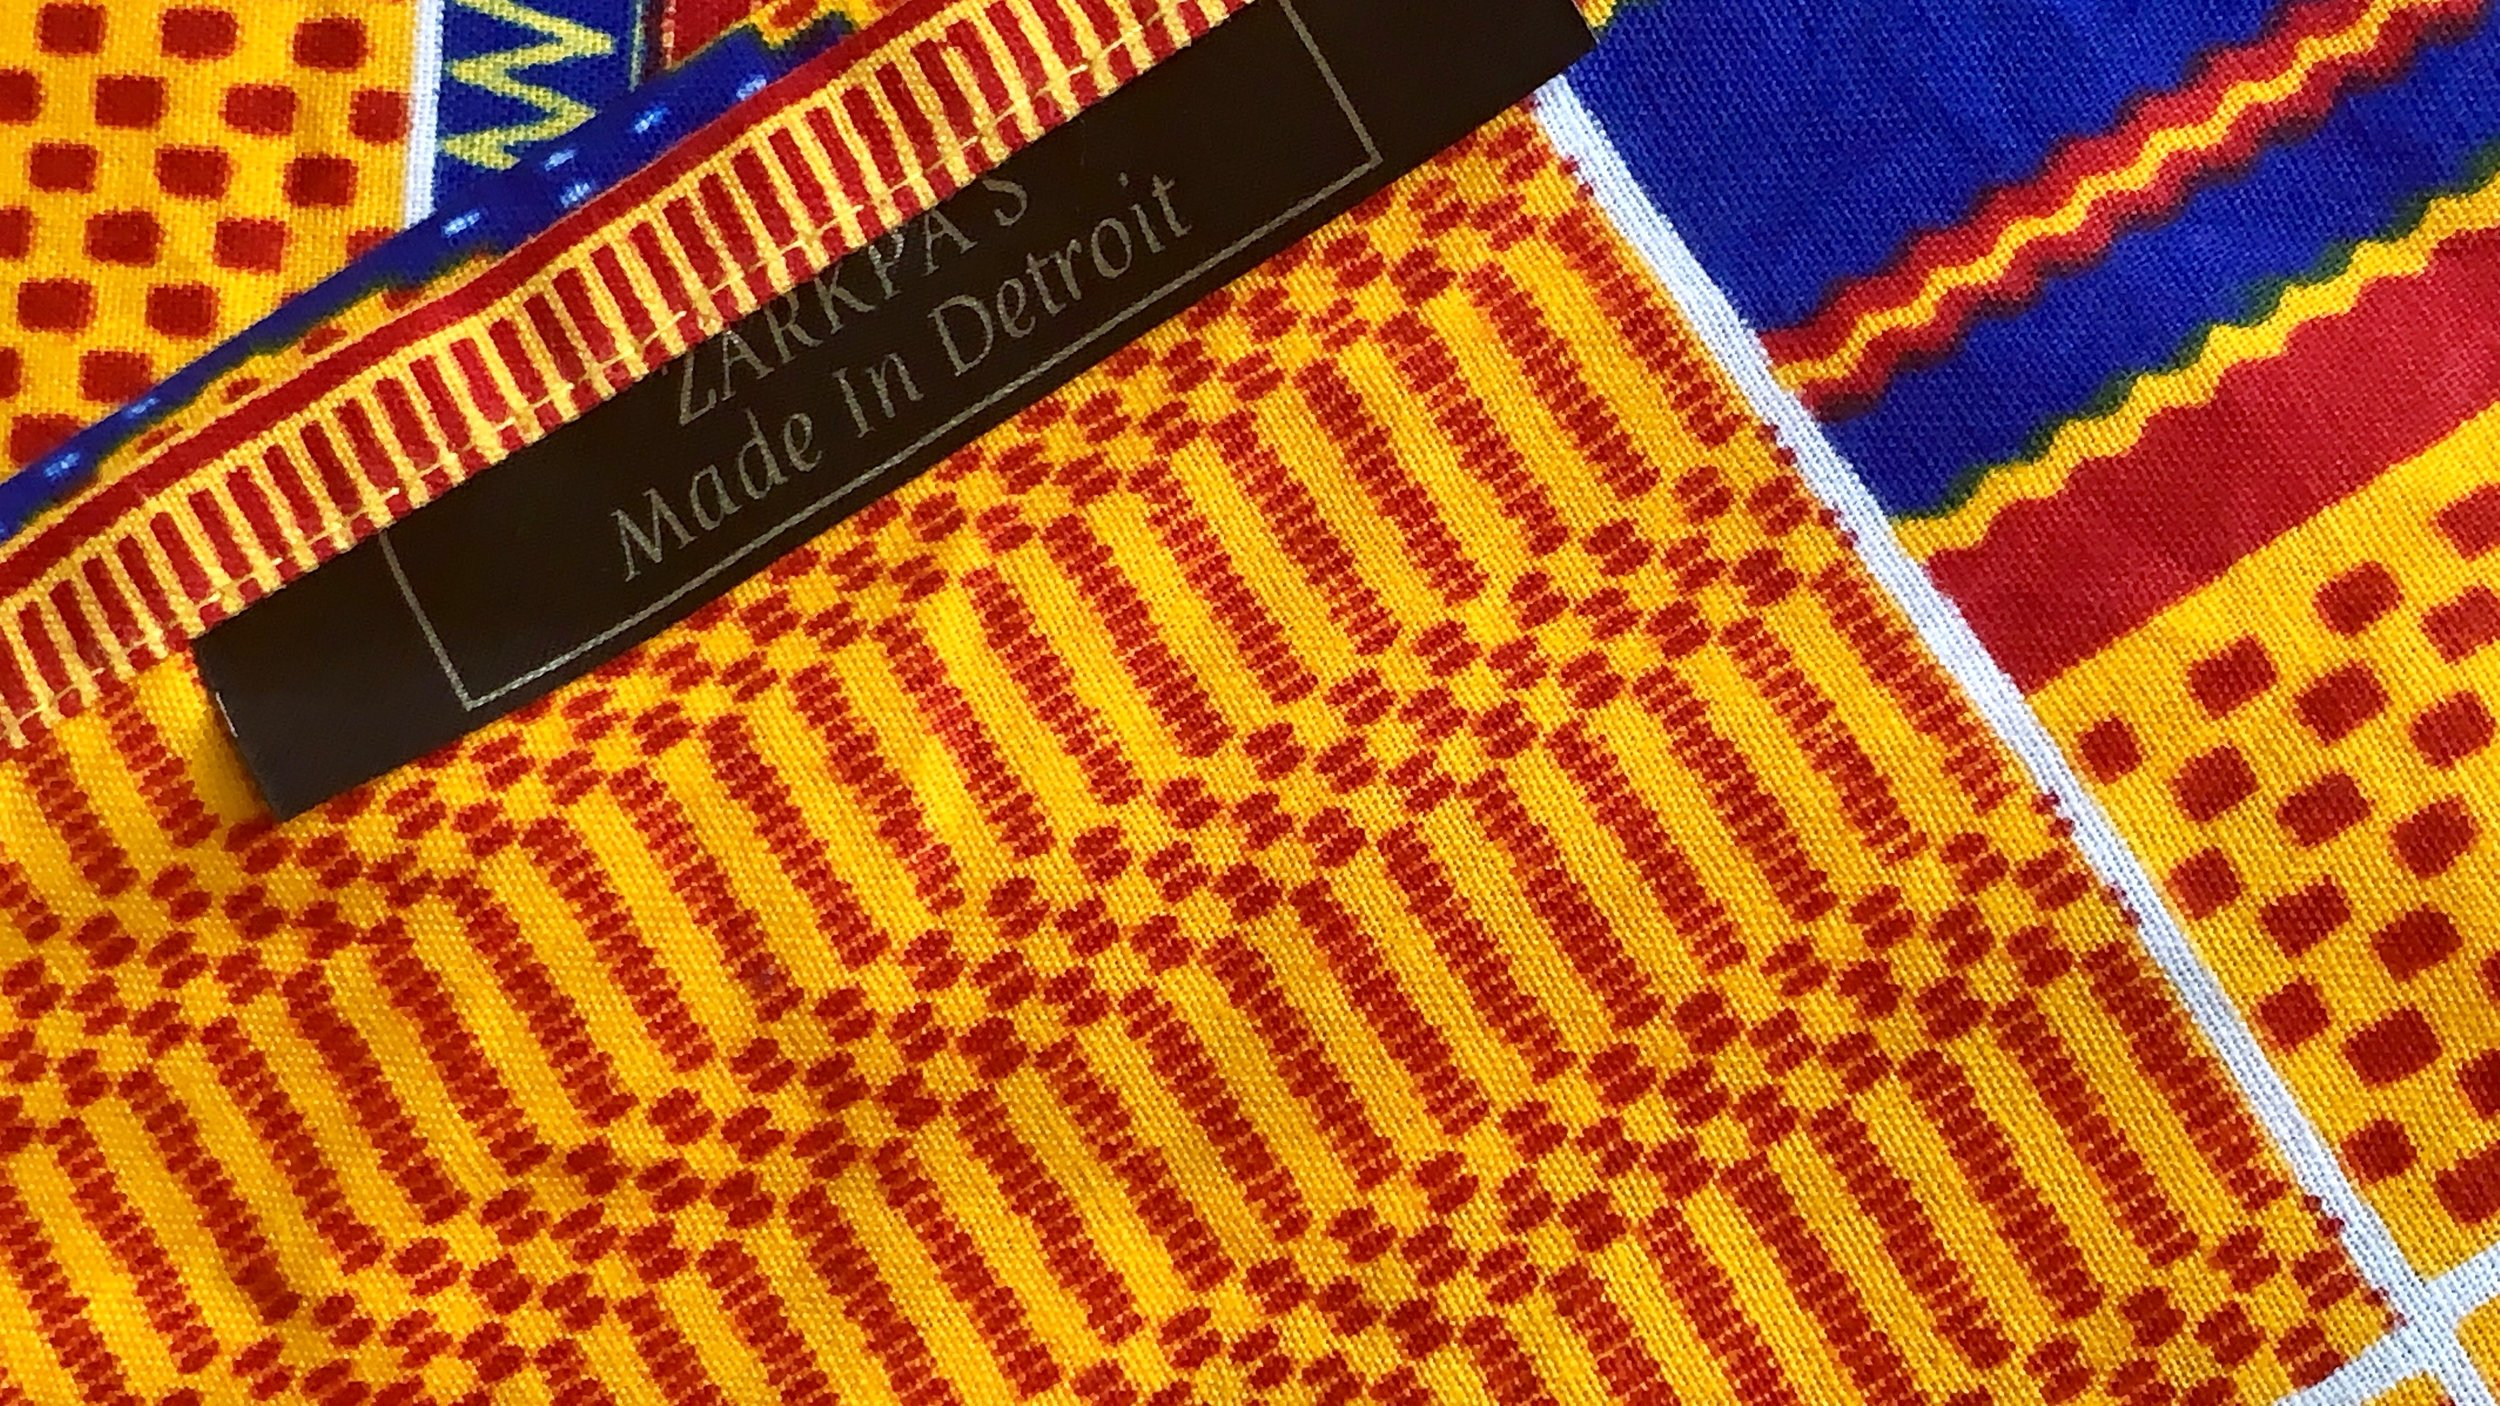 West African MANUFActory Apparel Company   - Made in Detroit